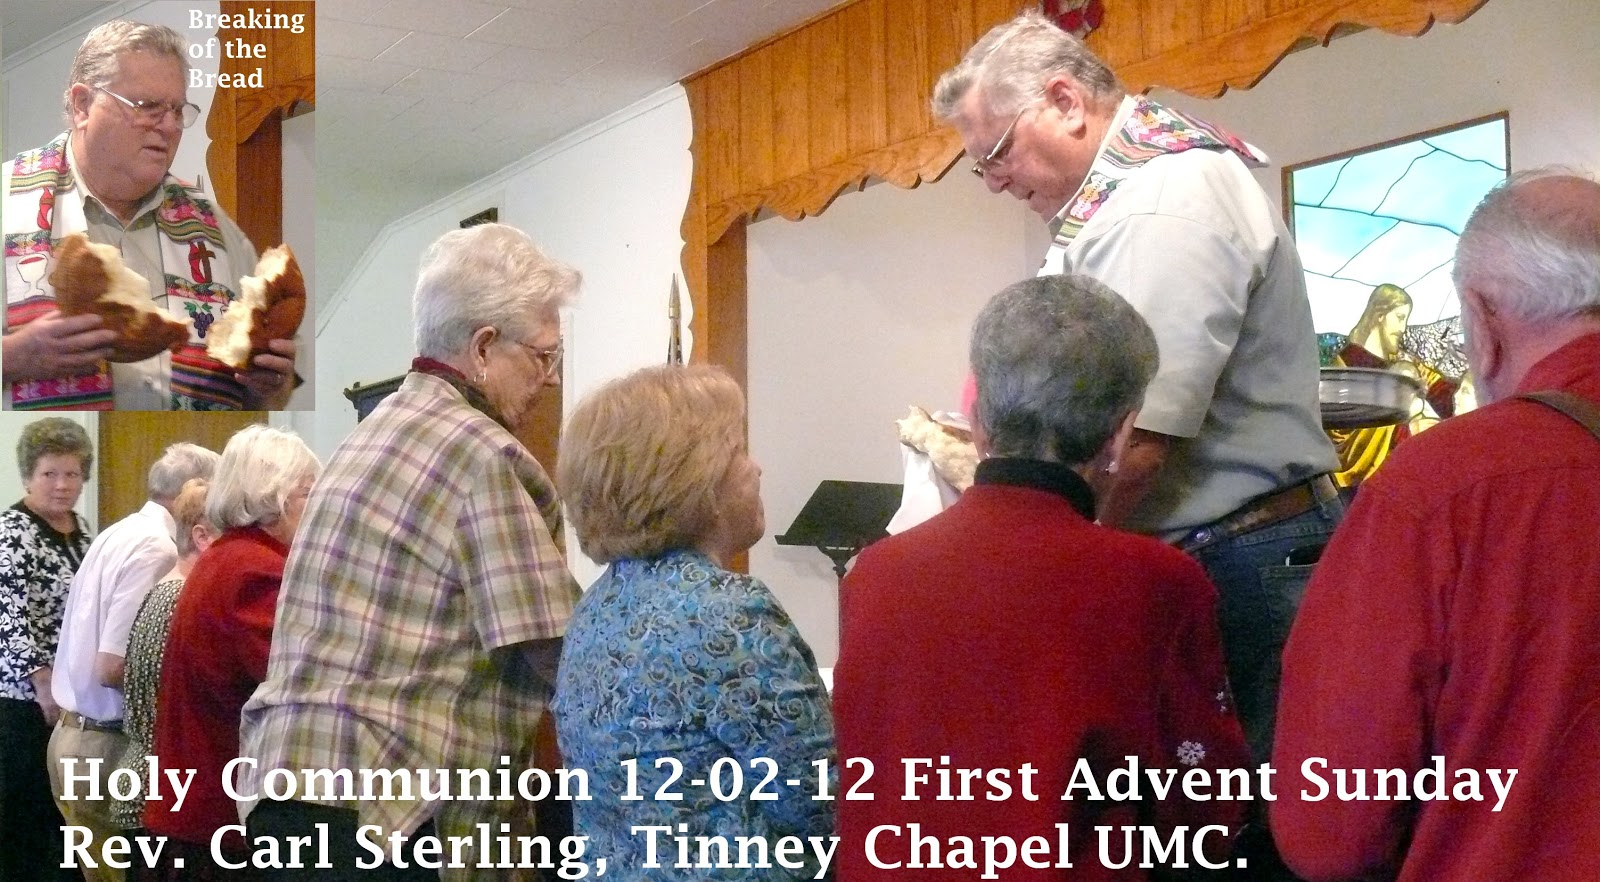 tinney chapel today first sunday of advent 12 02 12. Black Bedroom Furniture Sets. Home Design Ideas